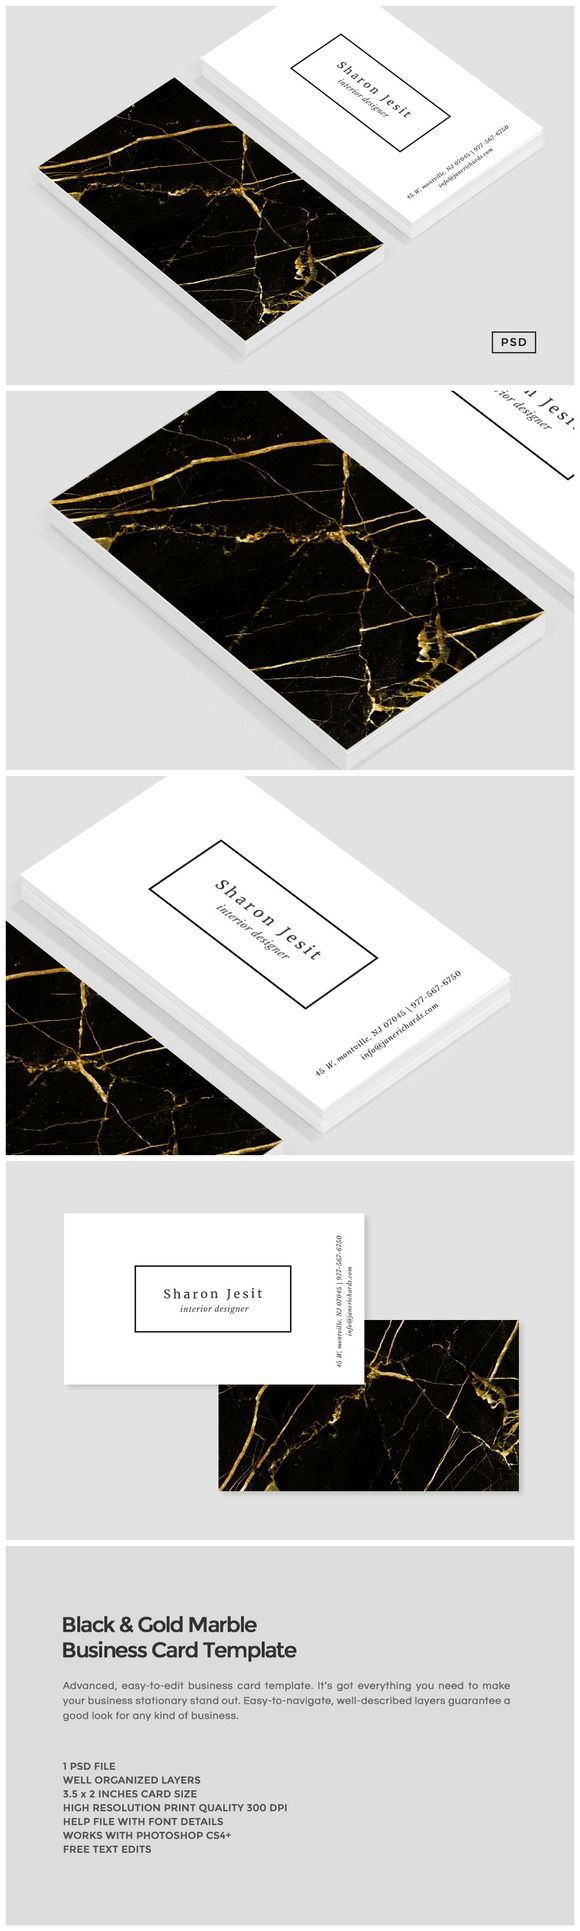 818 best business cards images on pinterest business cards carte black gold marble business card reheart Images